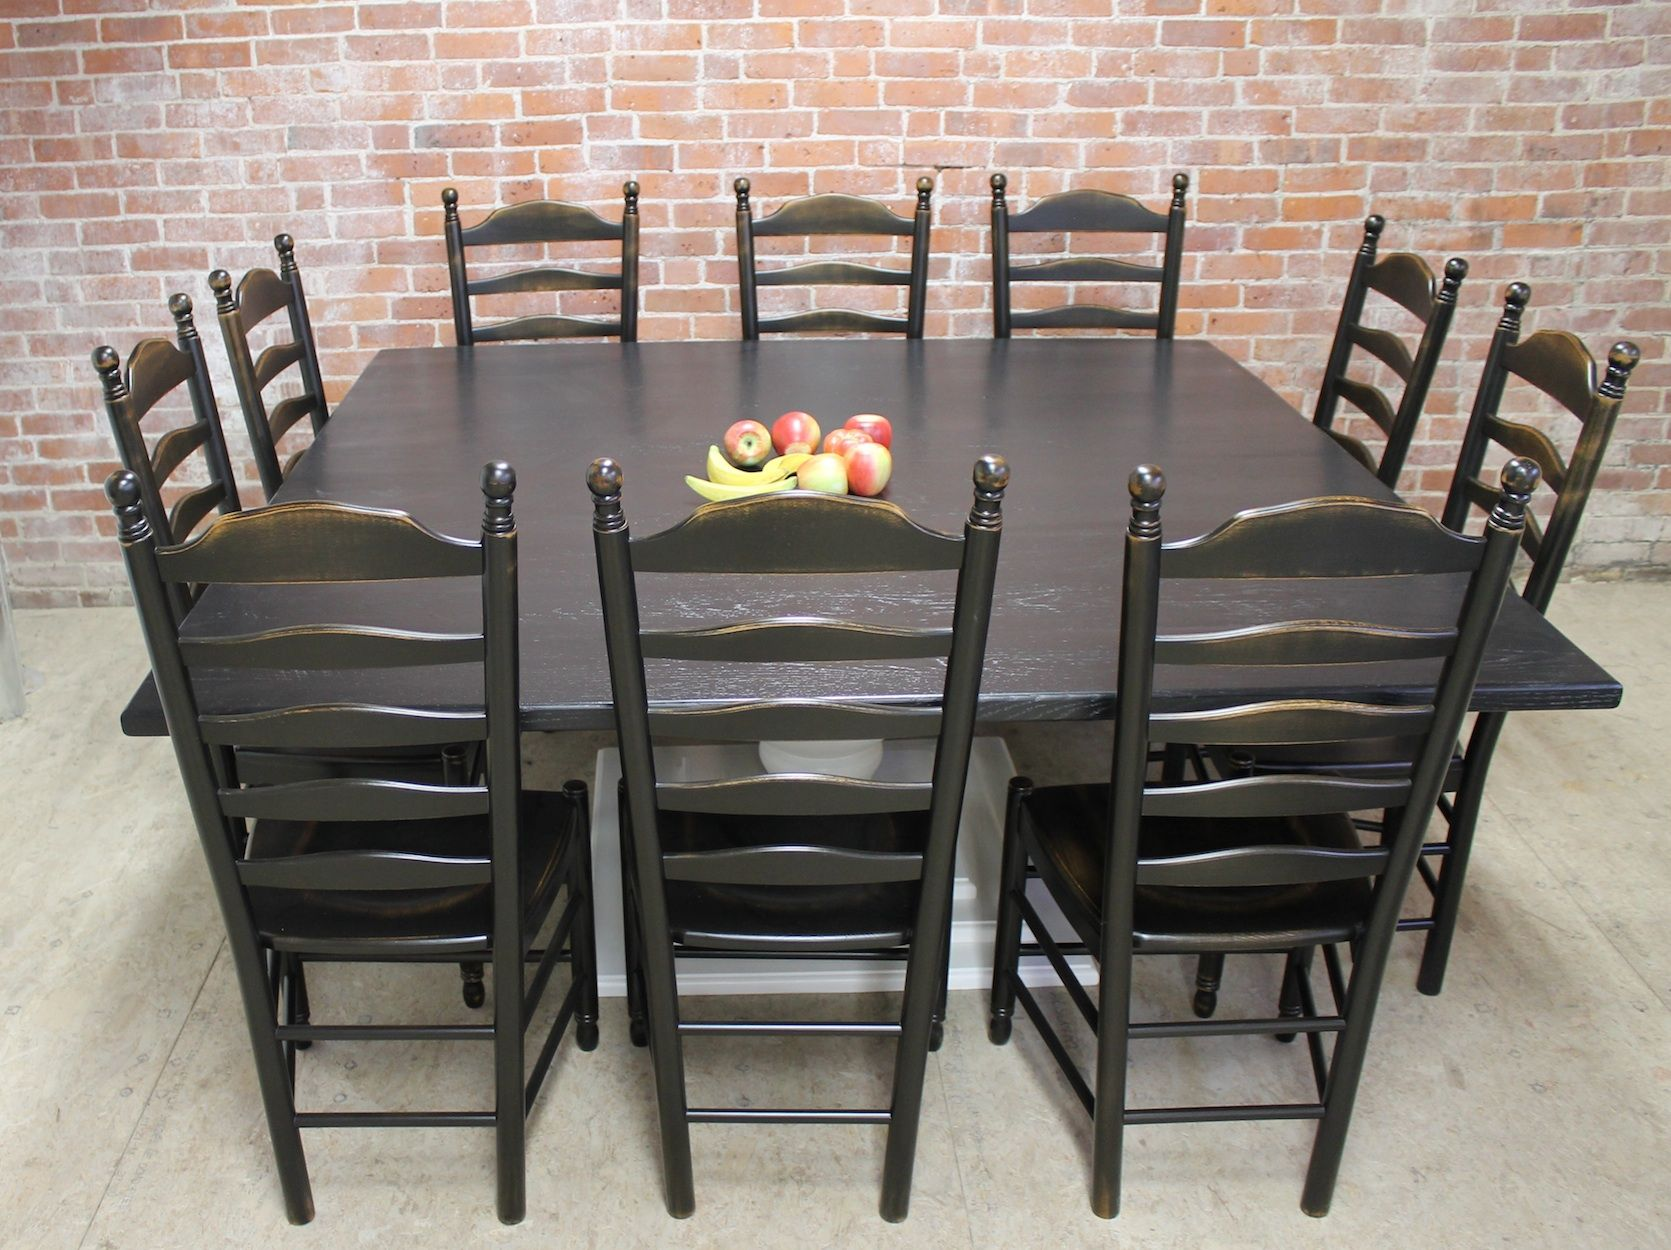 72 Inch Square Black Pedestal Table Lake And Mountain Home Square Dining Room Table Dining Table Black Dining Room Table